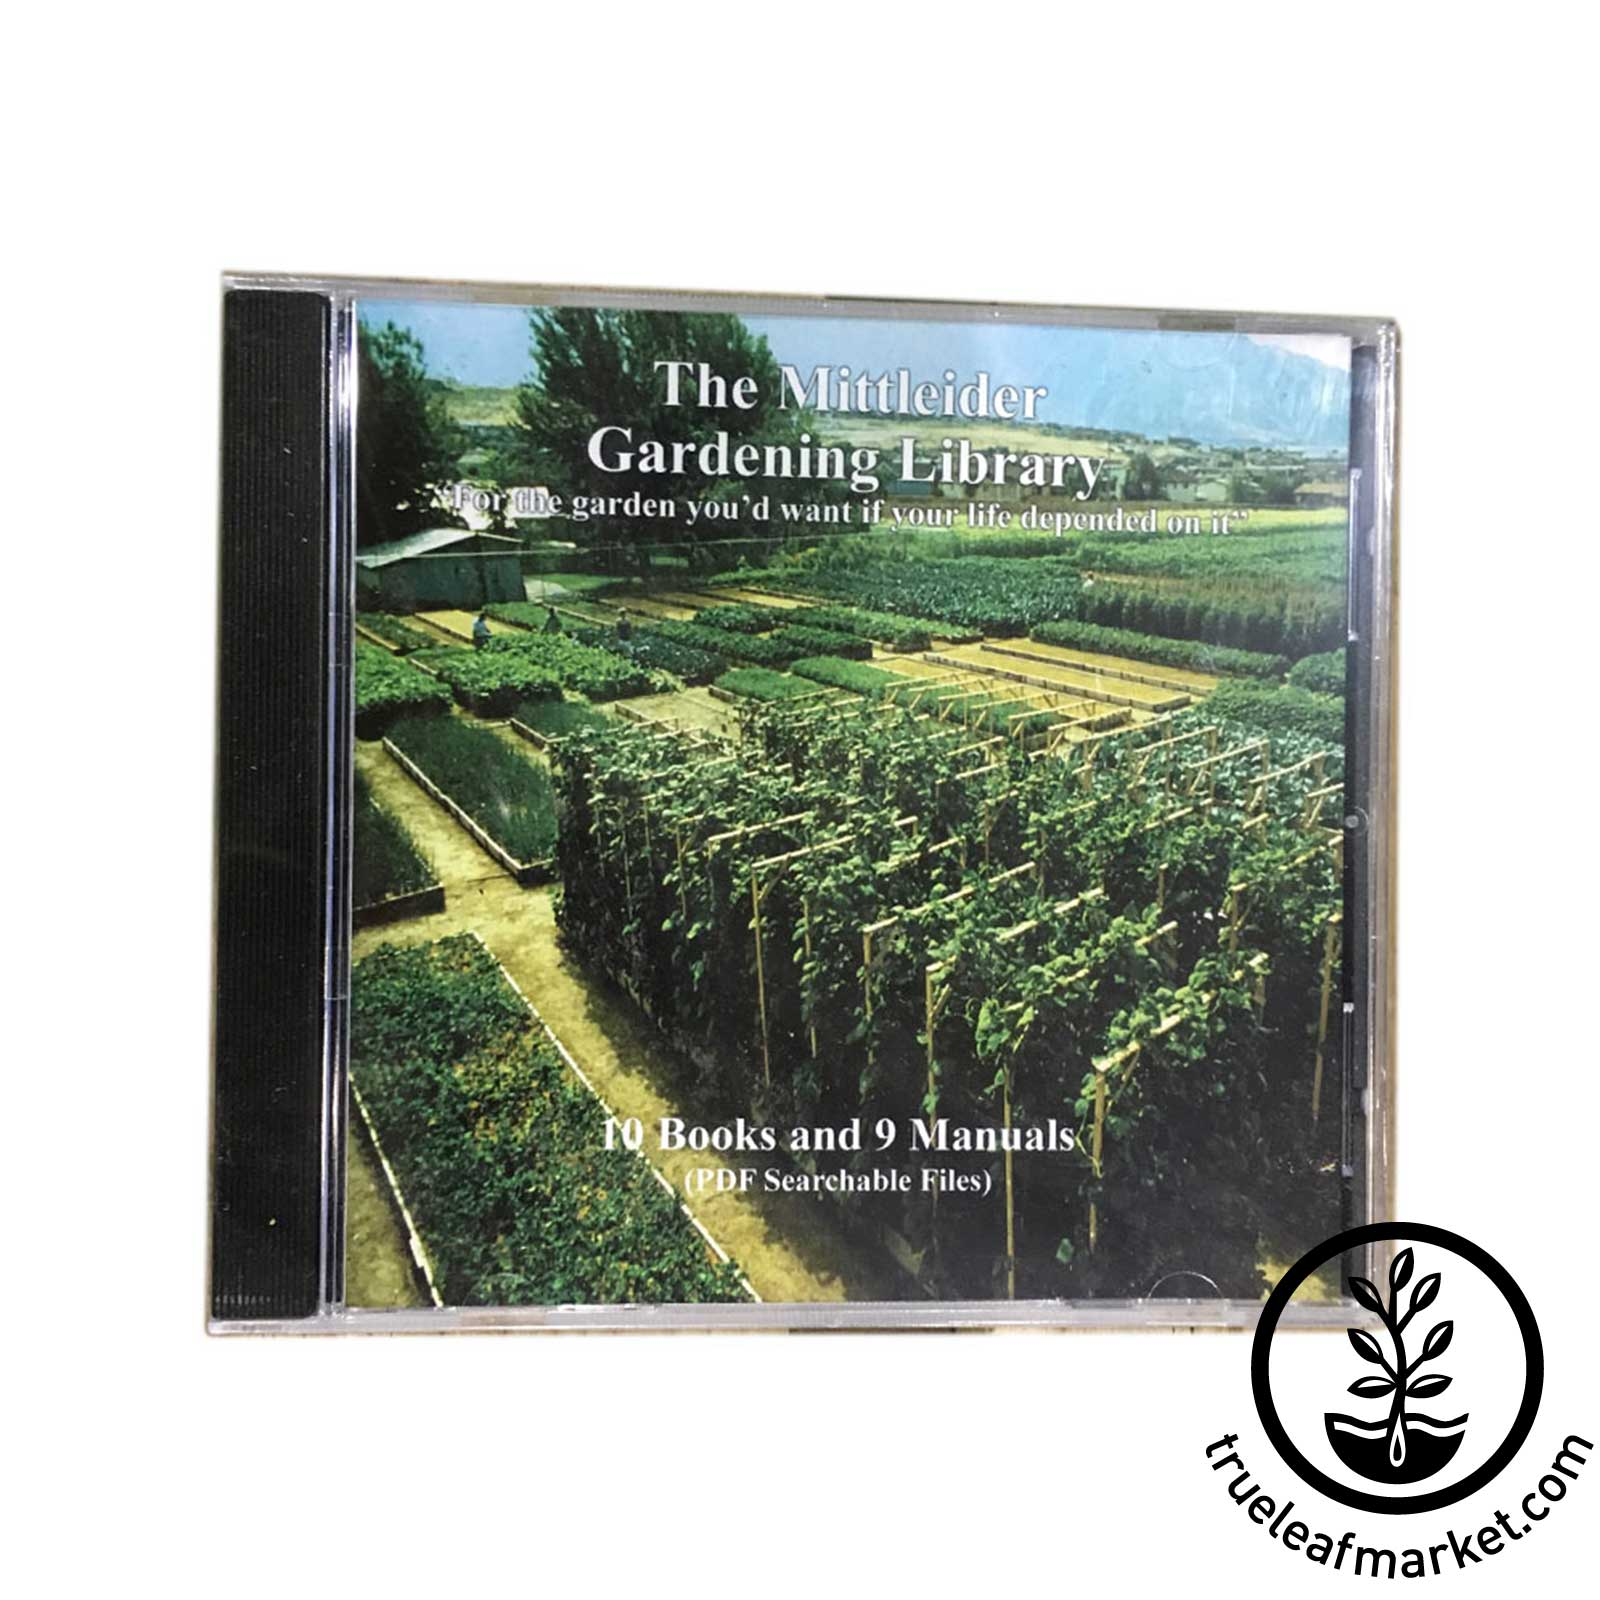 CD: The Mittleider Gardening Library